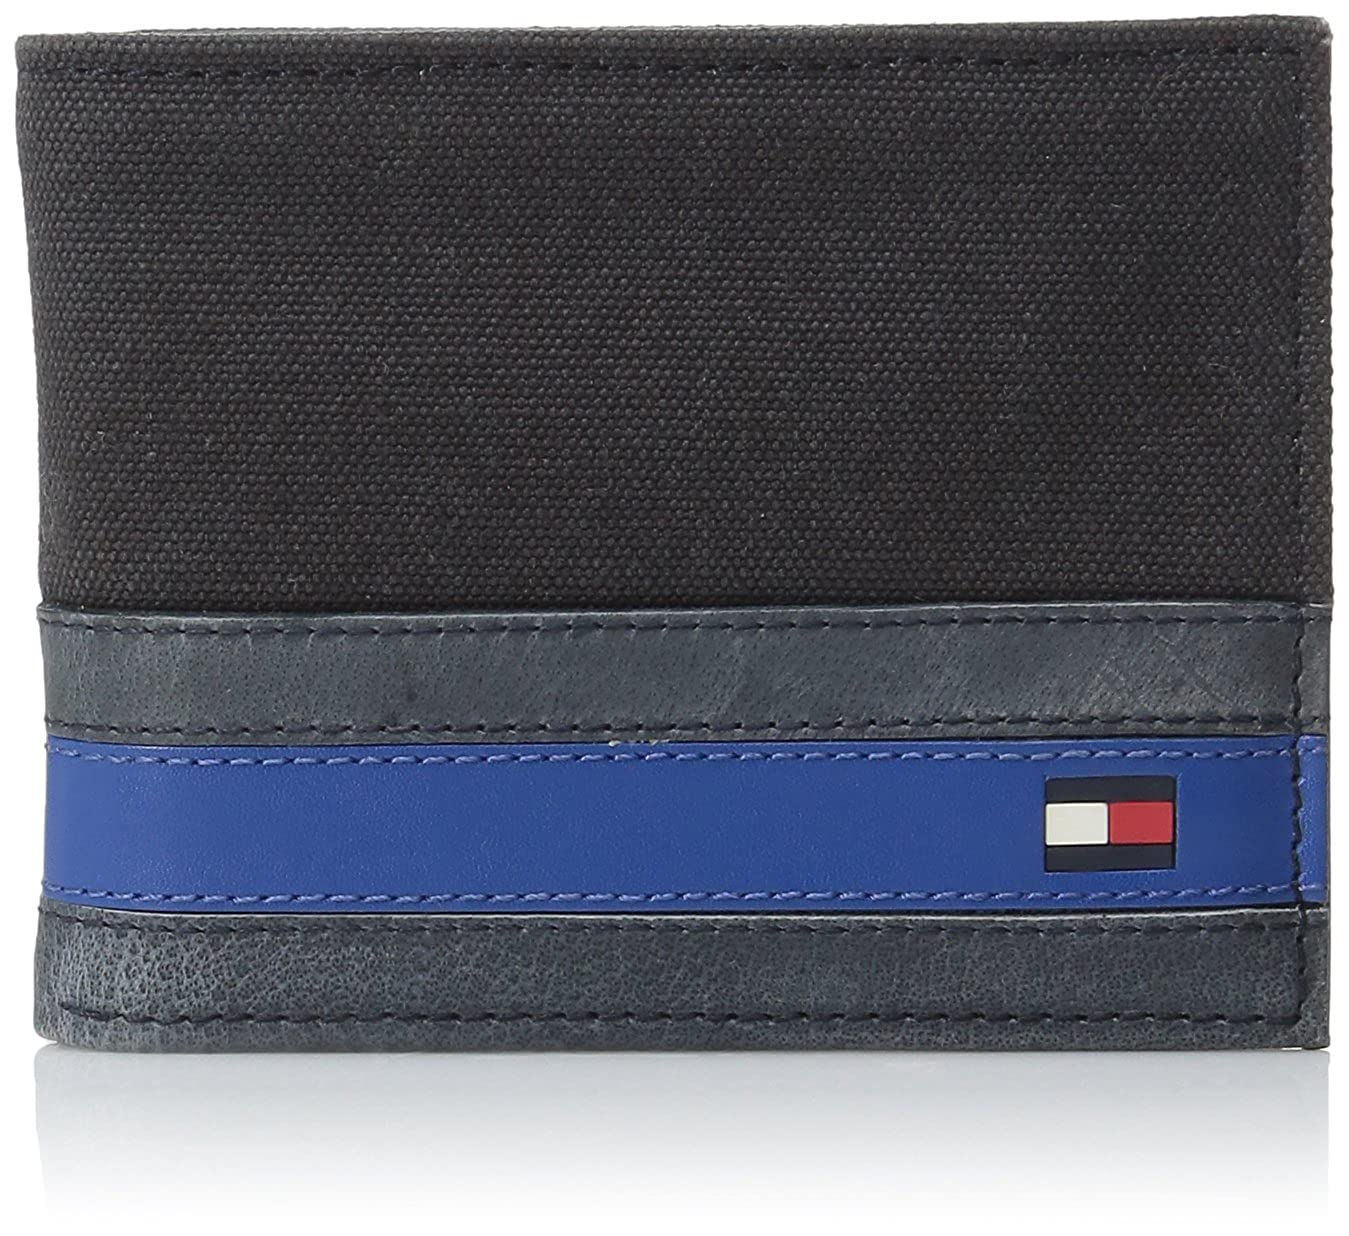 d6bfb8bc70 Tommy Hilfiger Wallets for Men - Slim Thin Smart Multipurpose Leather  Bifold Passcase with Removable Flipout Card Holder, Exeter Black at Amazon  Men's ...